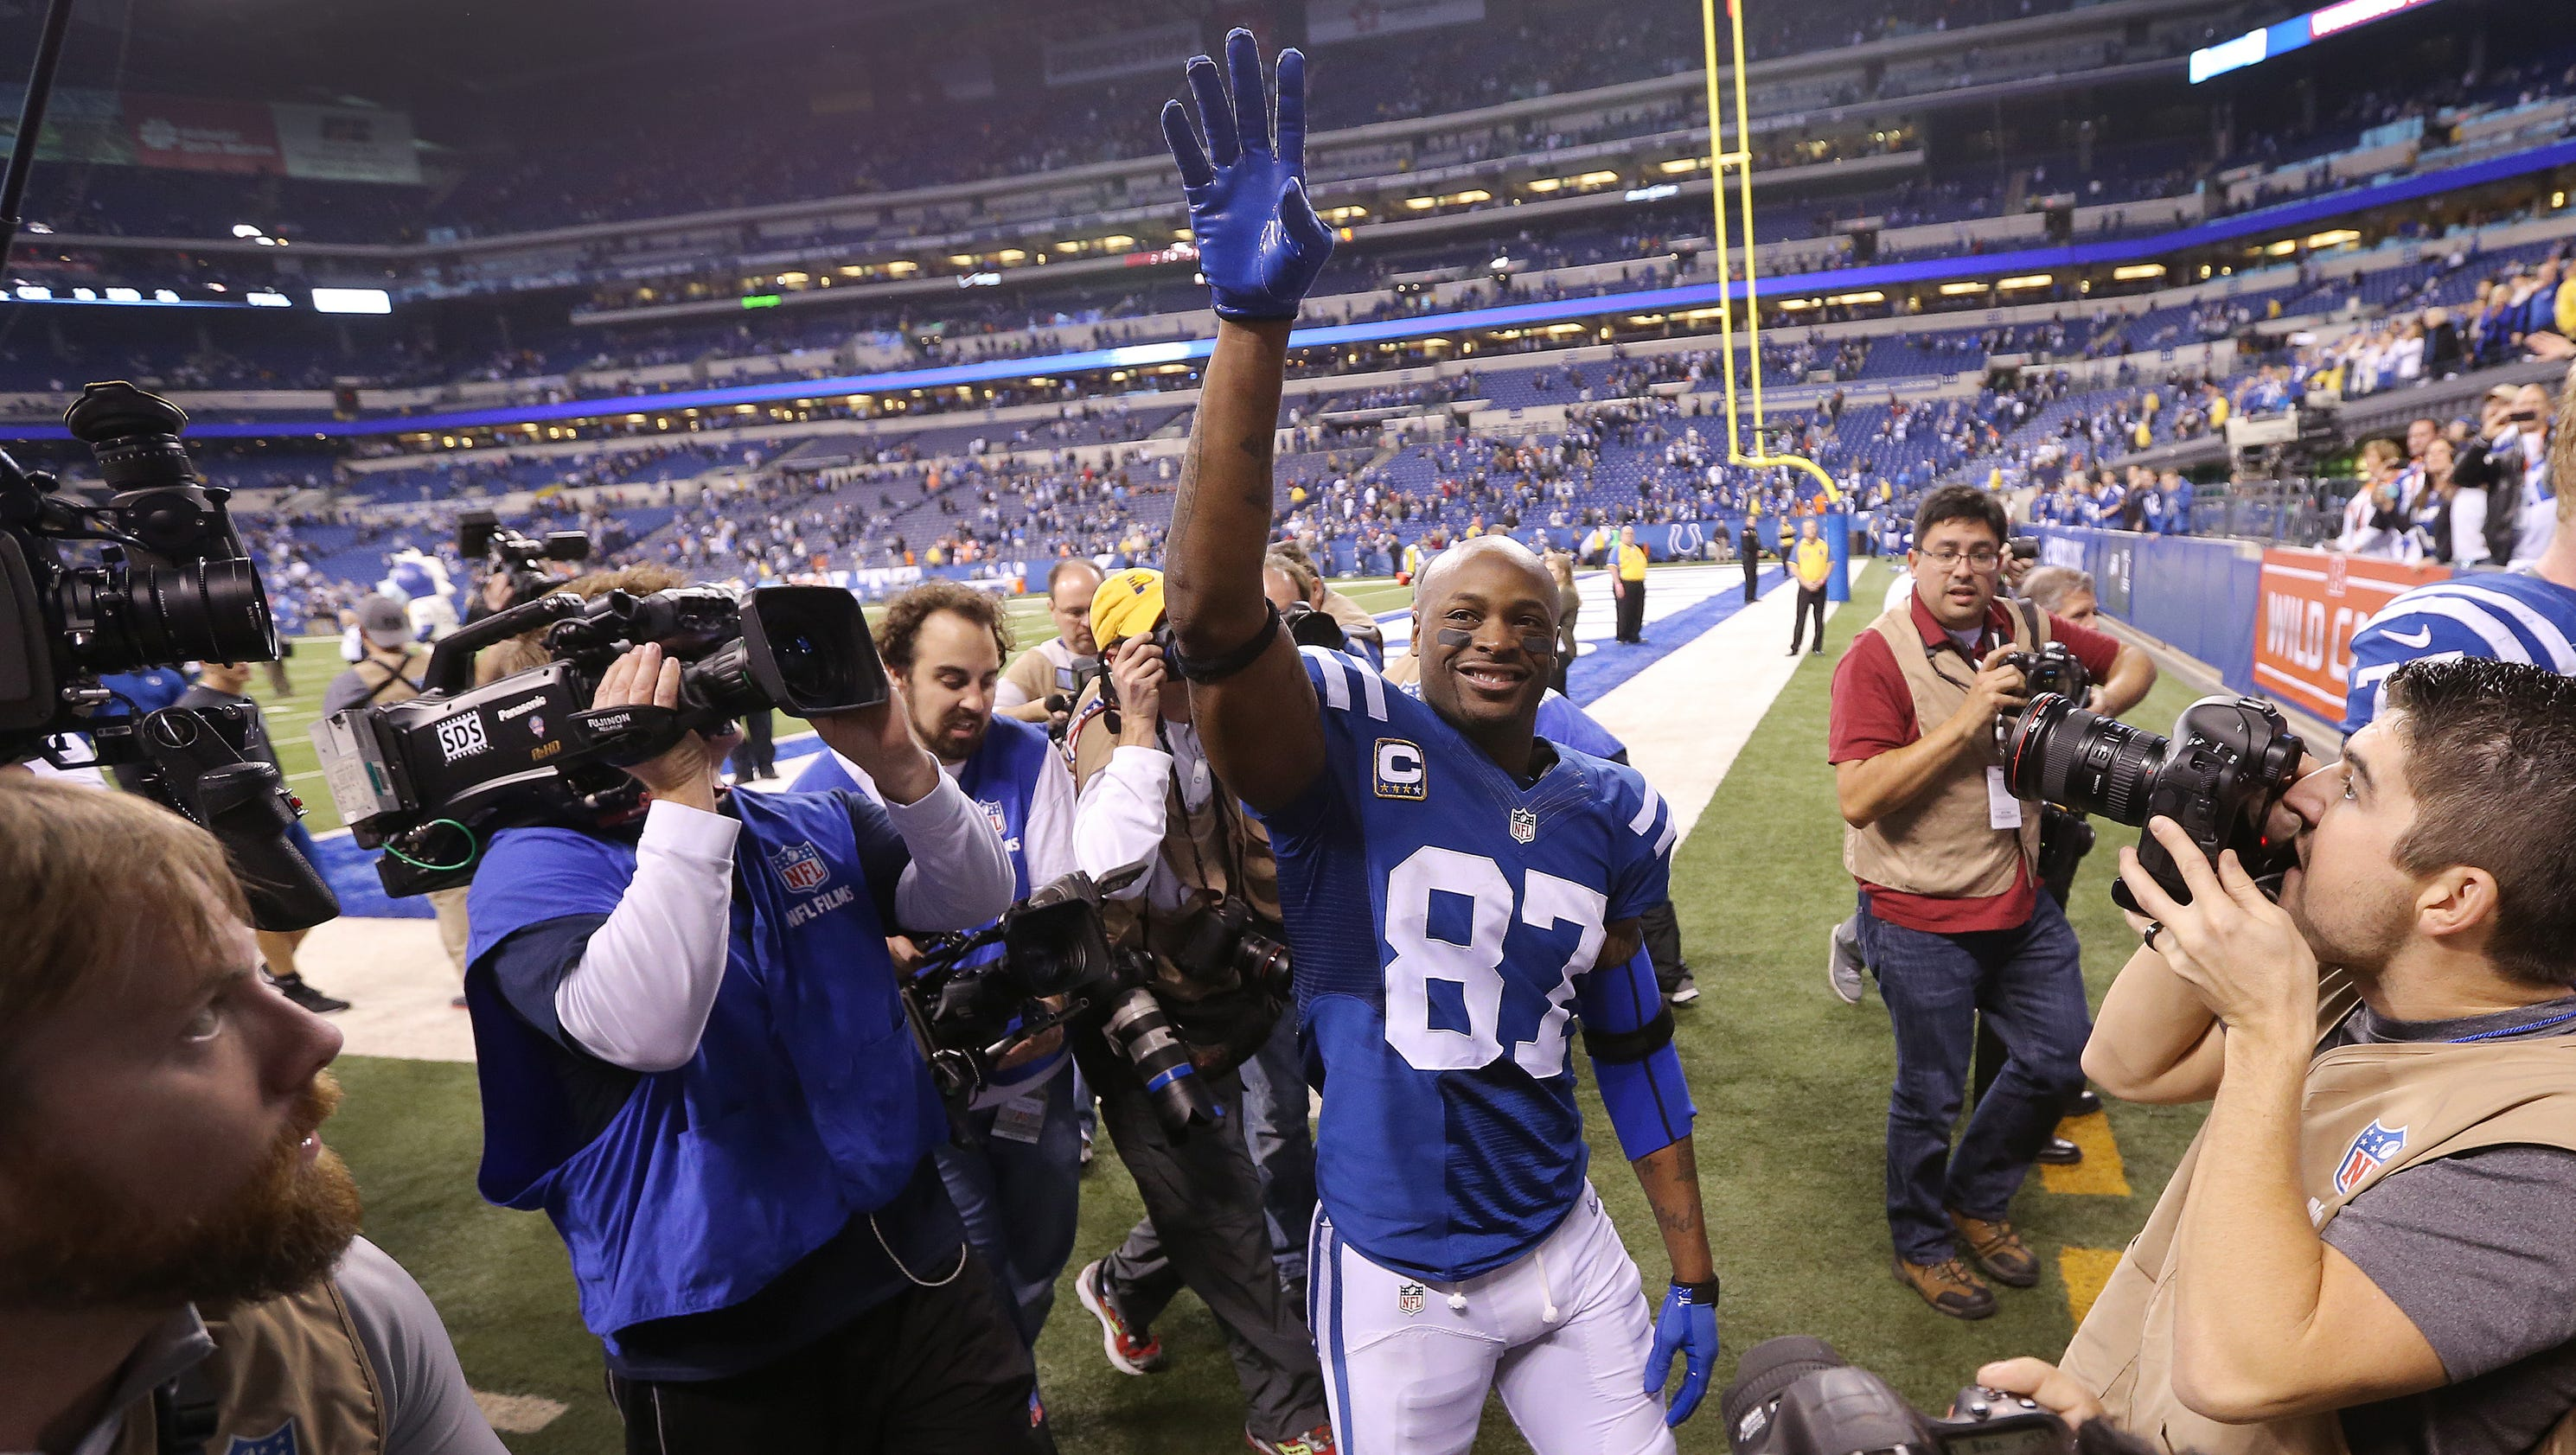 Letter from Reggie Wayne to Colts fans